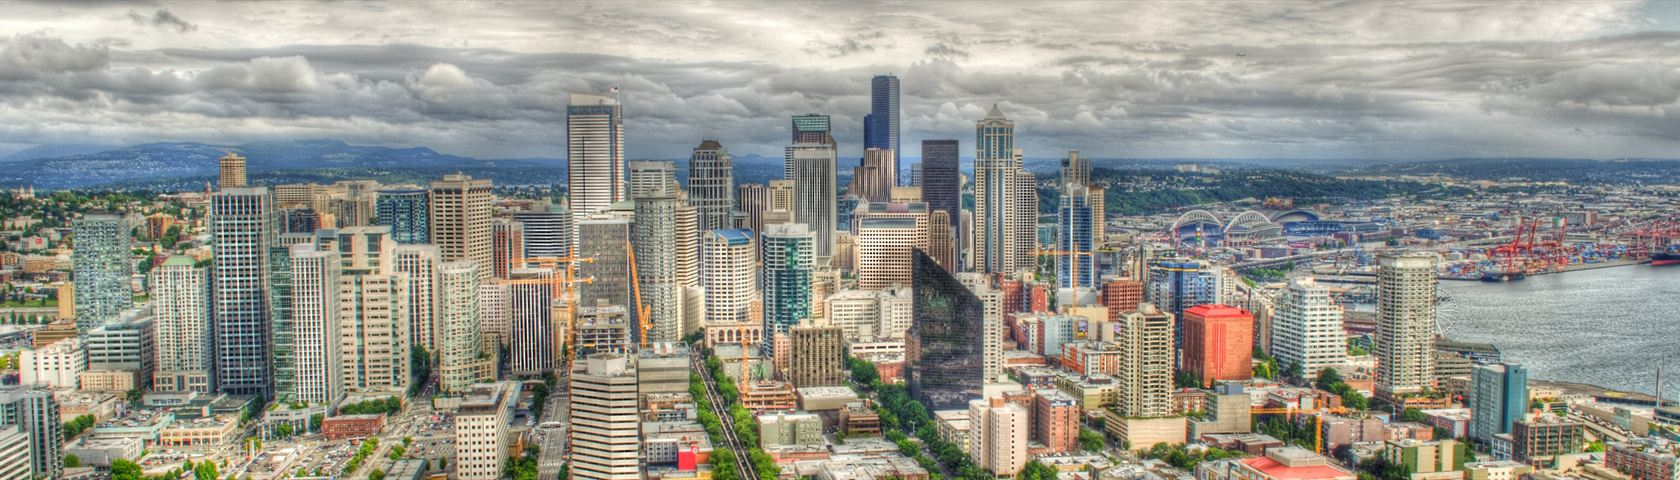 Seattle HDR